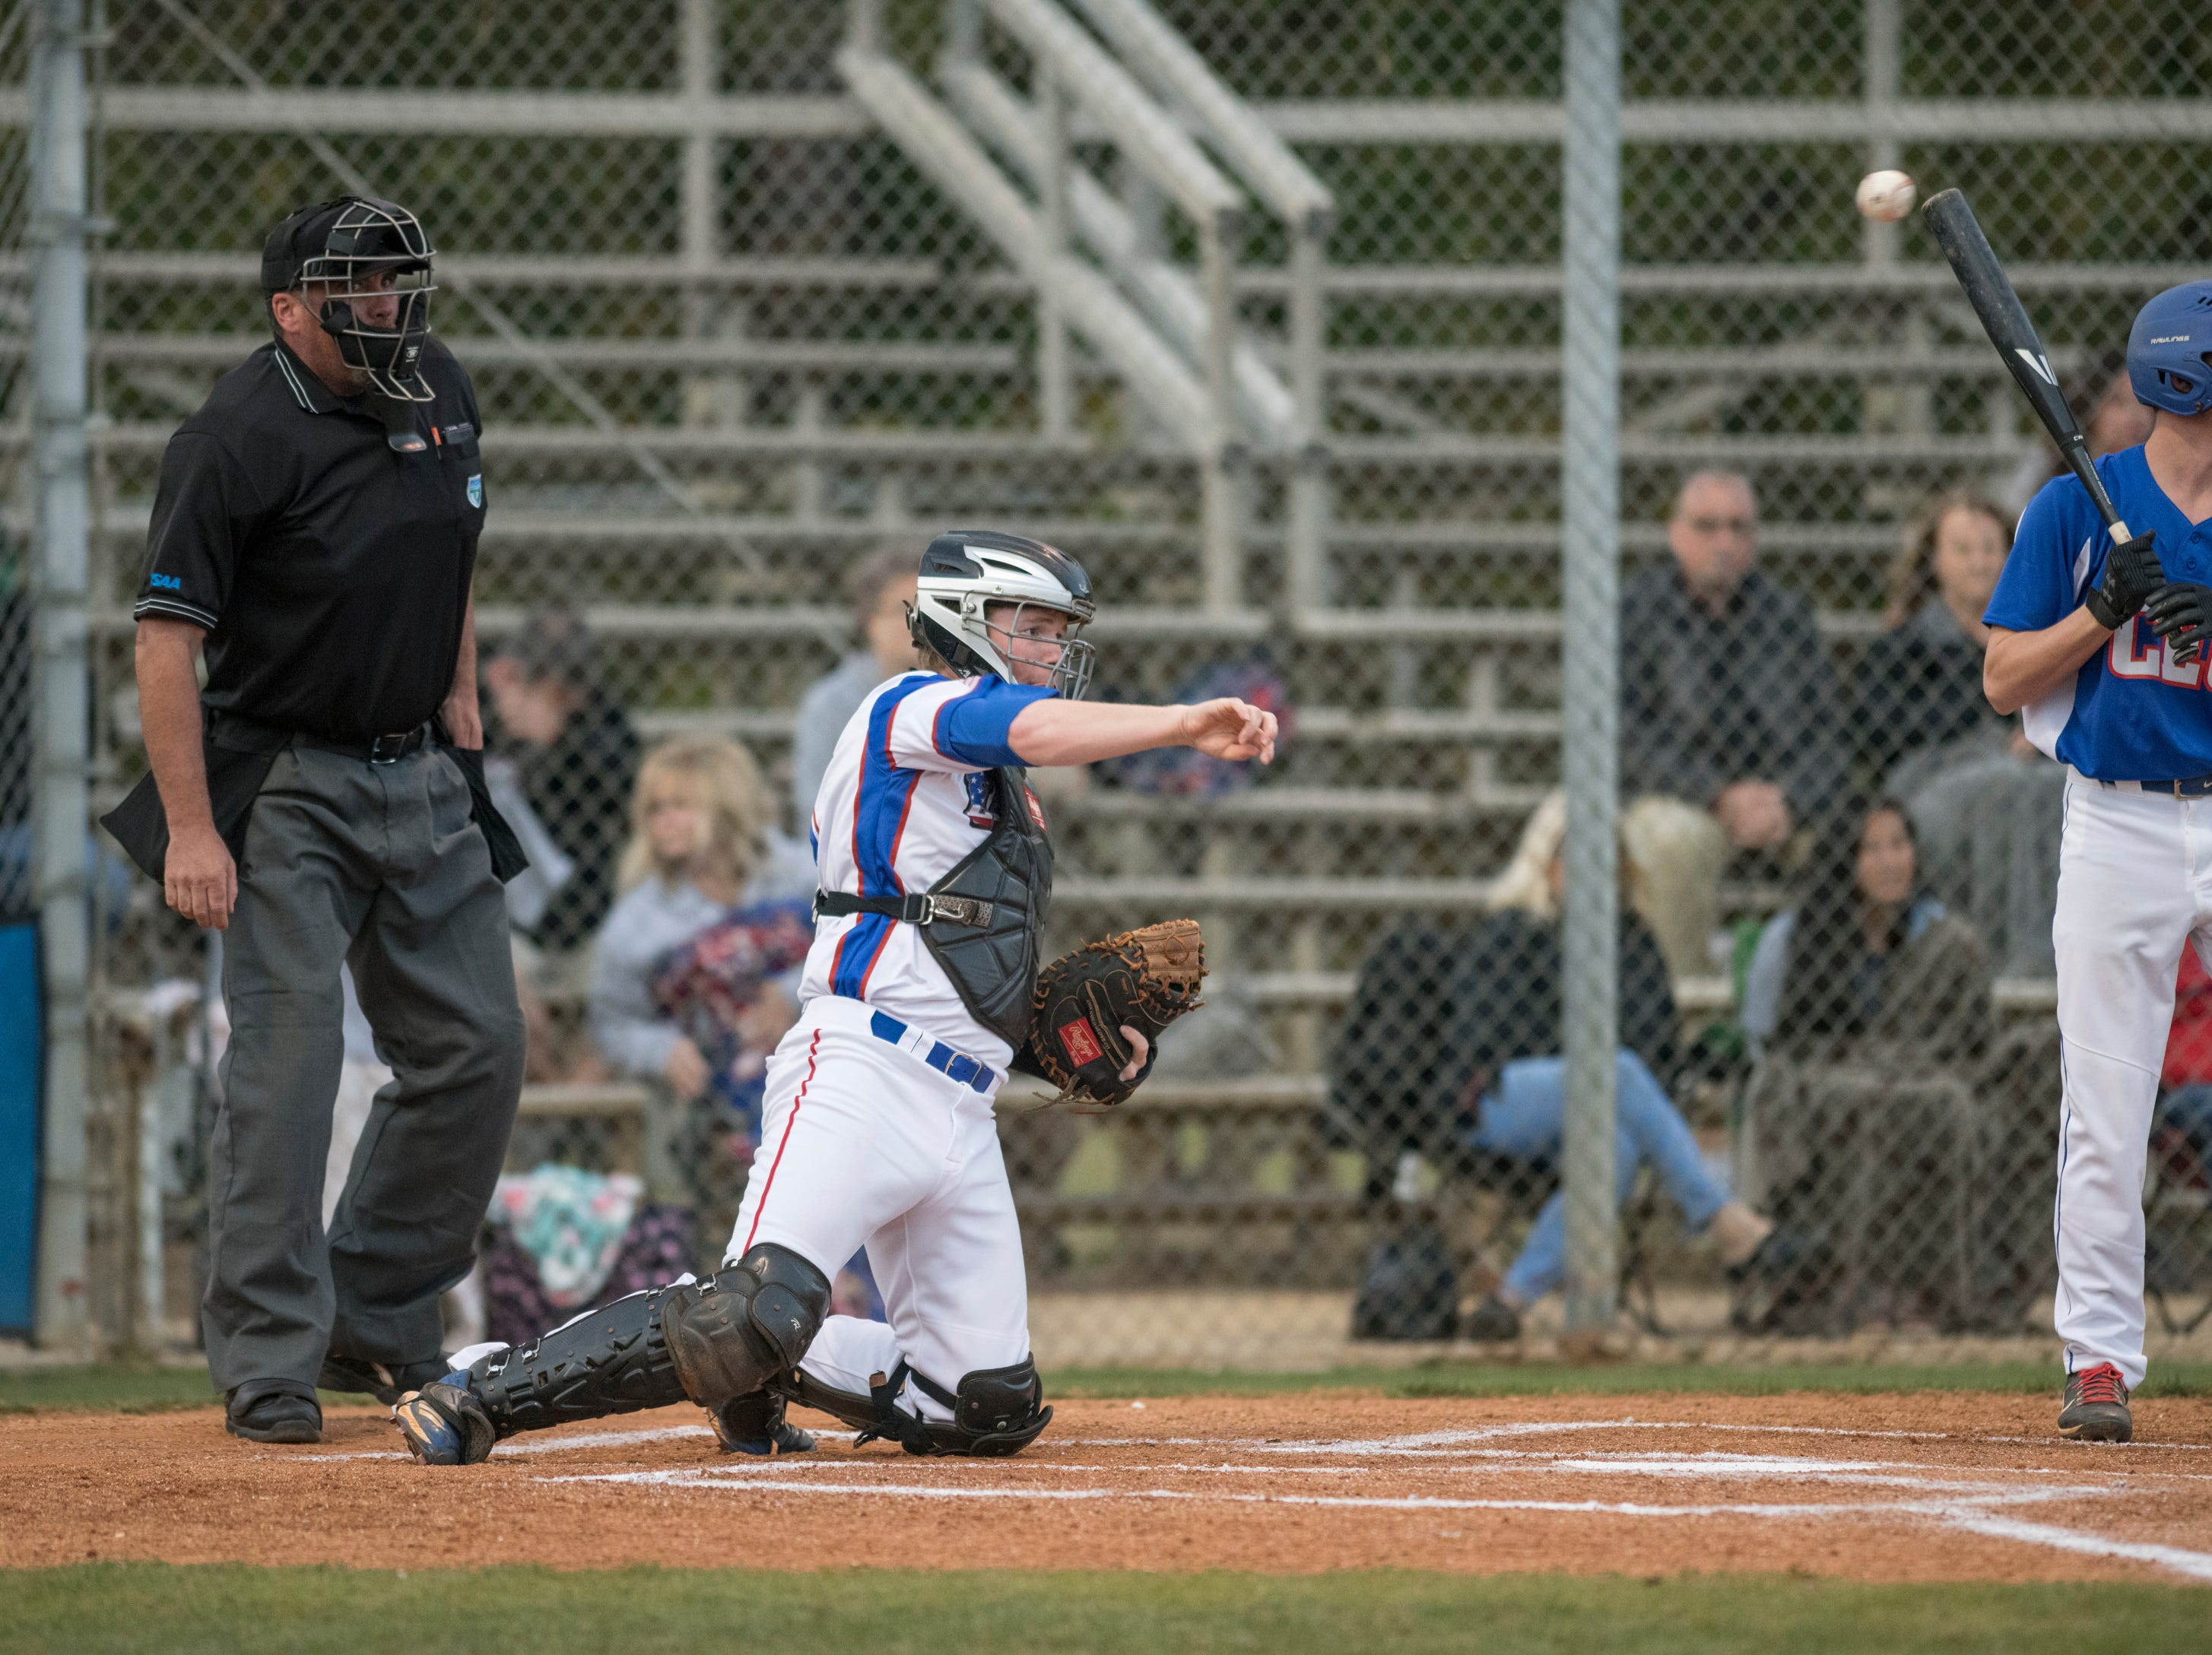 Catcher Jason Roberts (15) tosses the ball back to the pitcher during the Christian Educational Consortium vs Pine Forest baseball game at Pine Forest High School in Pensacola on Wednesday, April 3, 2019.